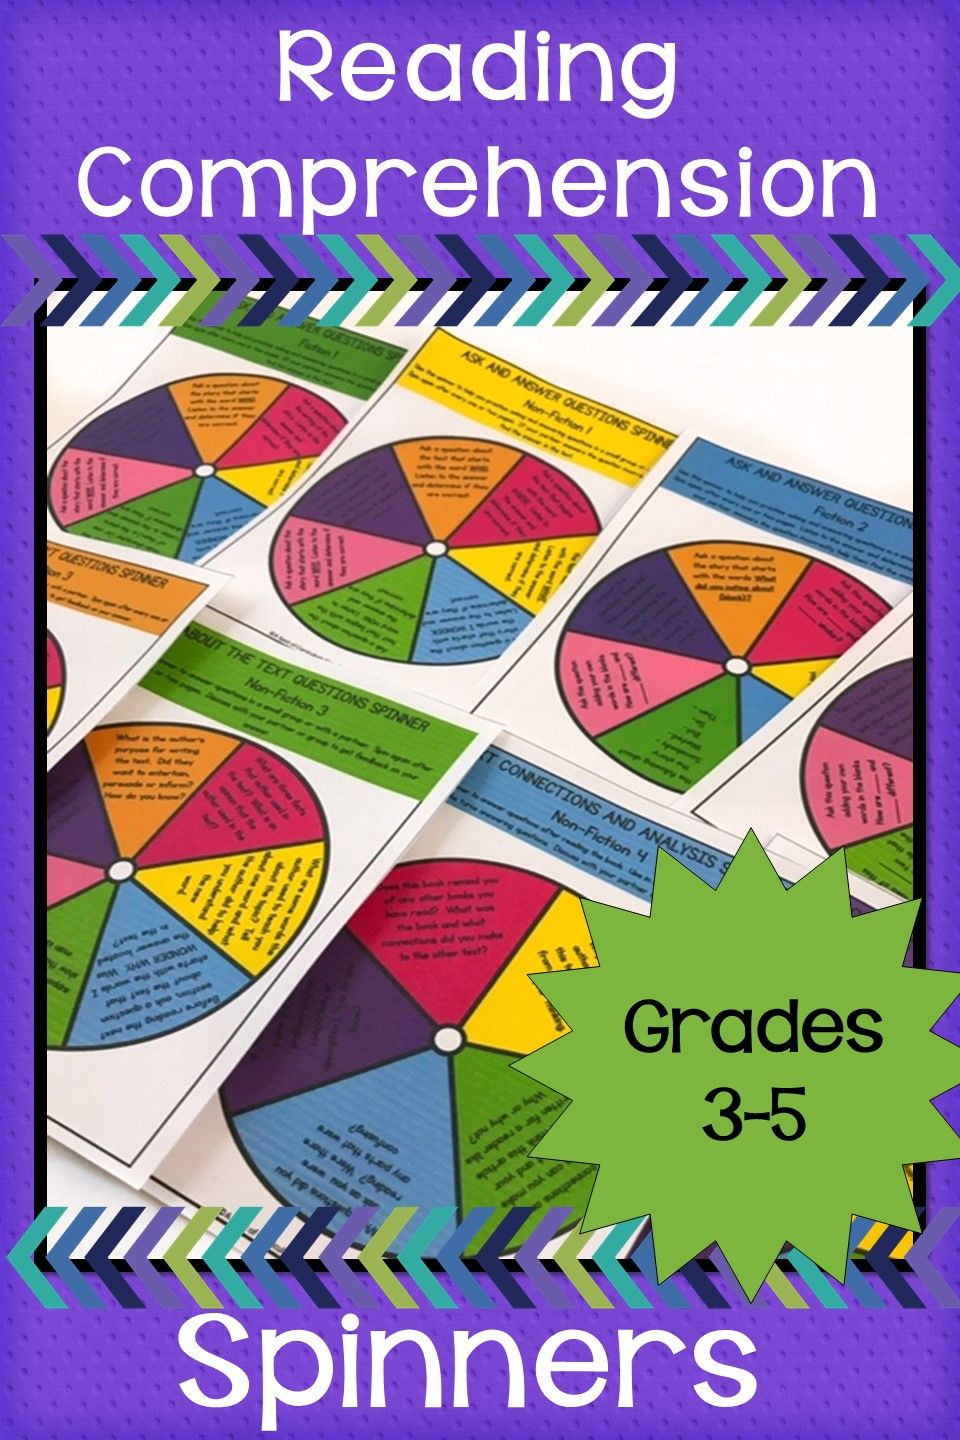 Reading Comprehension Spinners Reading Comprehension Reading Comprehension Activities Improve Reading Comprehension Best reading comprehension books for